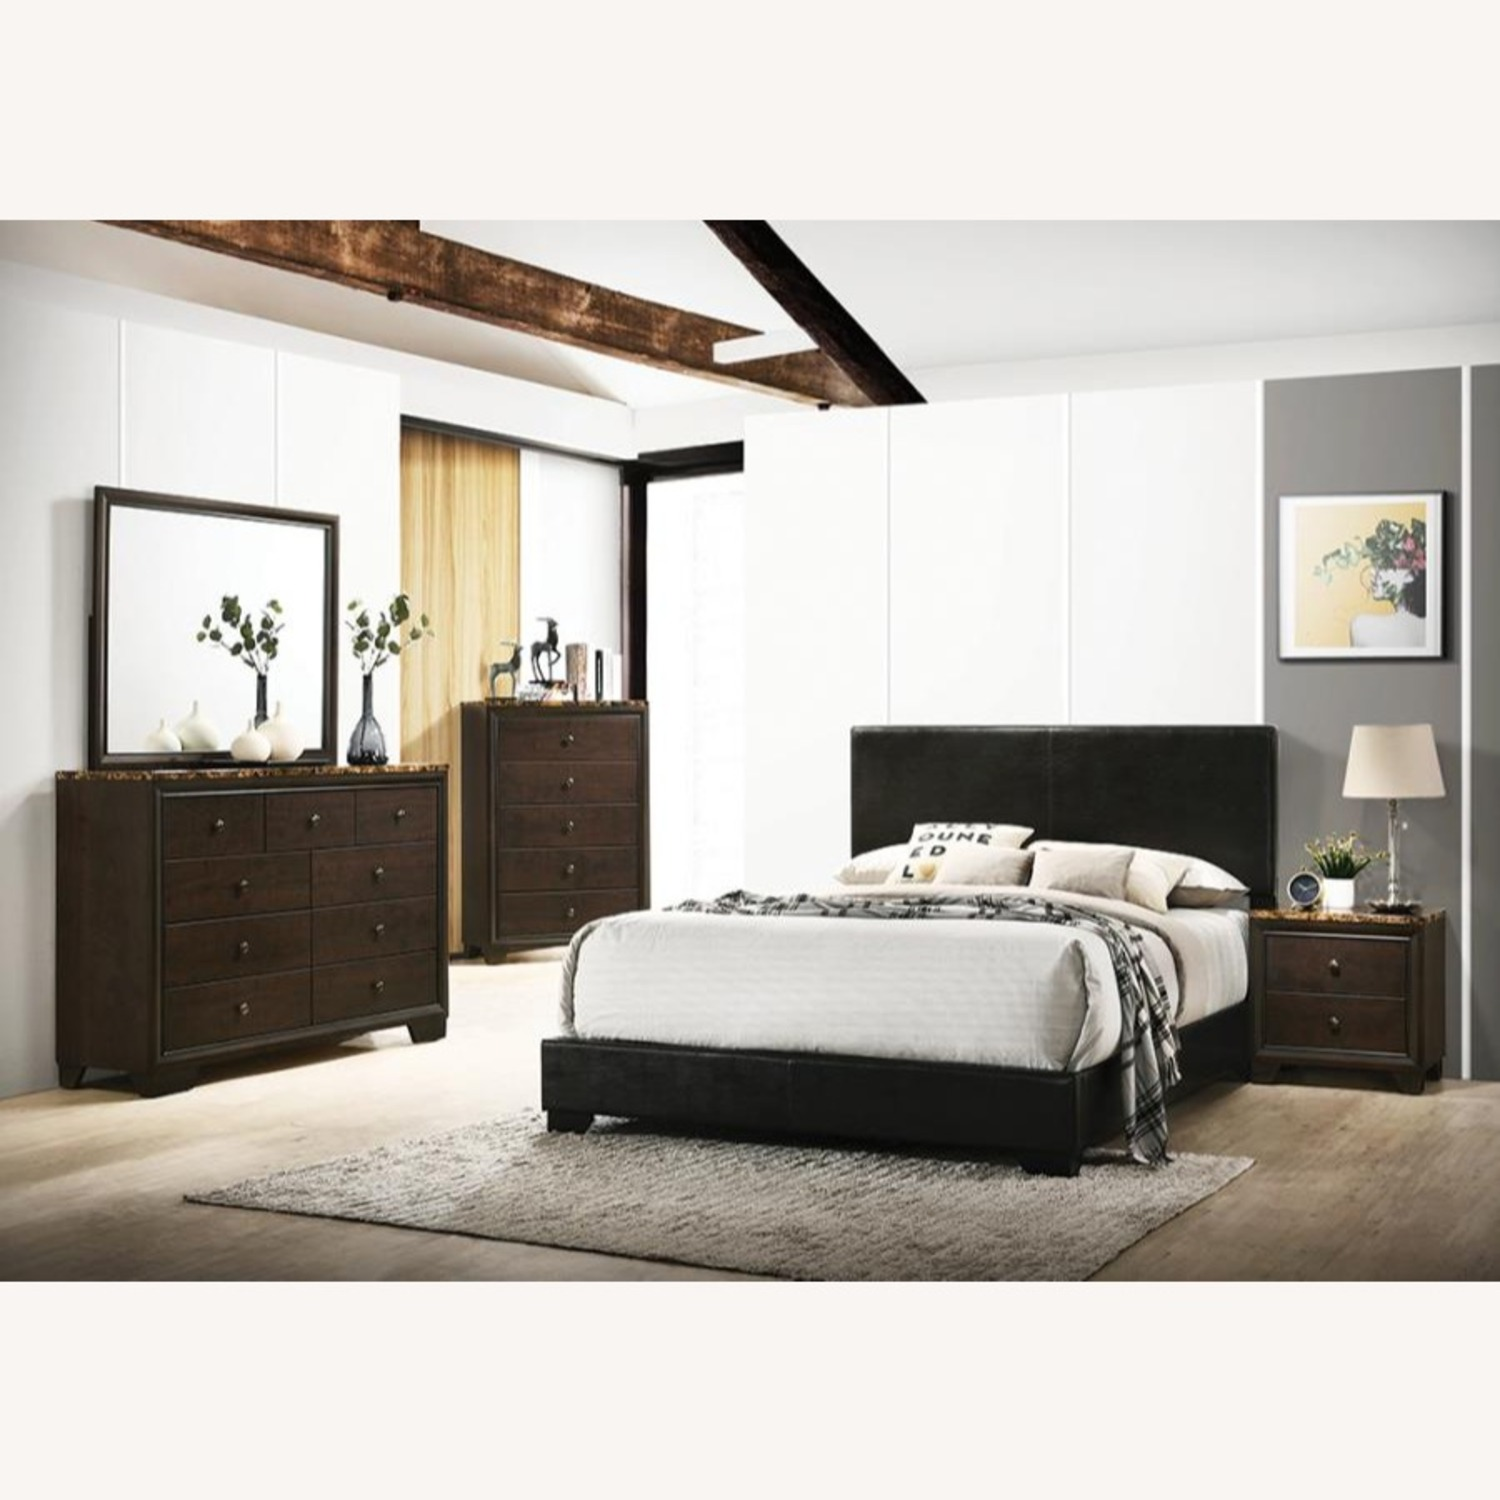 Full Bed In Black Finish W/ Black Leatherette - image-4